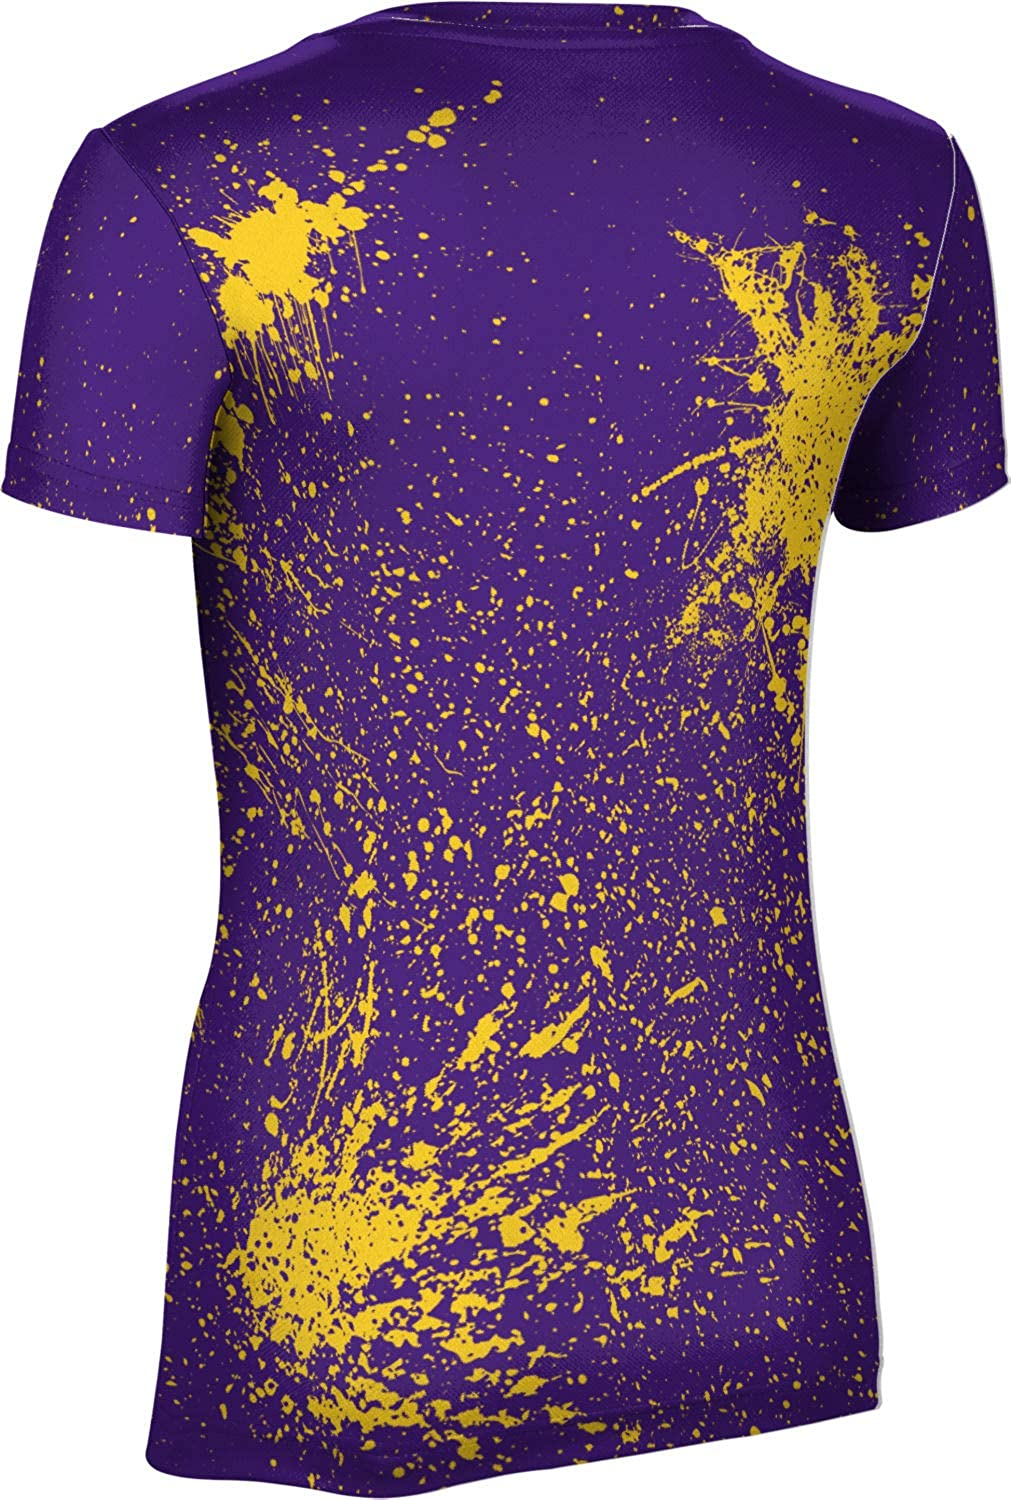 Splatter Fiesta Bowl 2019 LSU University Girls Performance T-Shirt